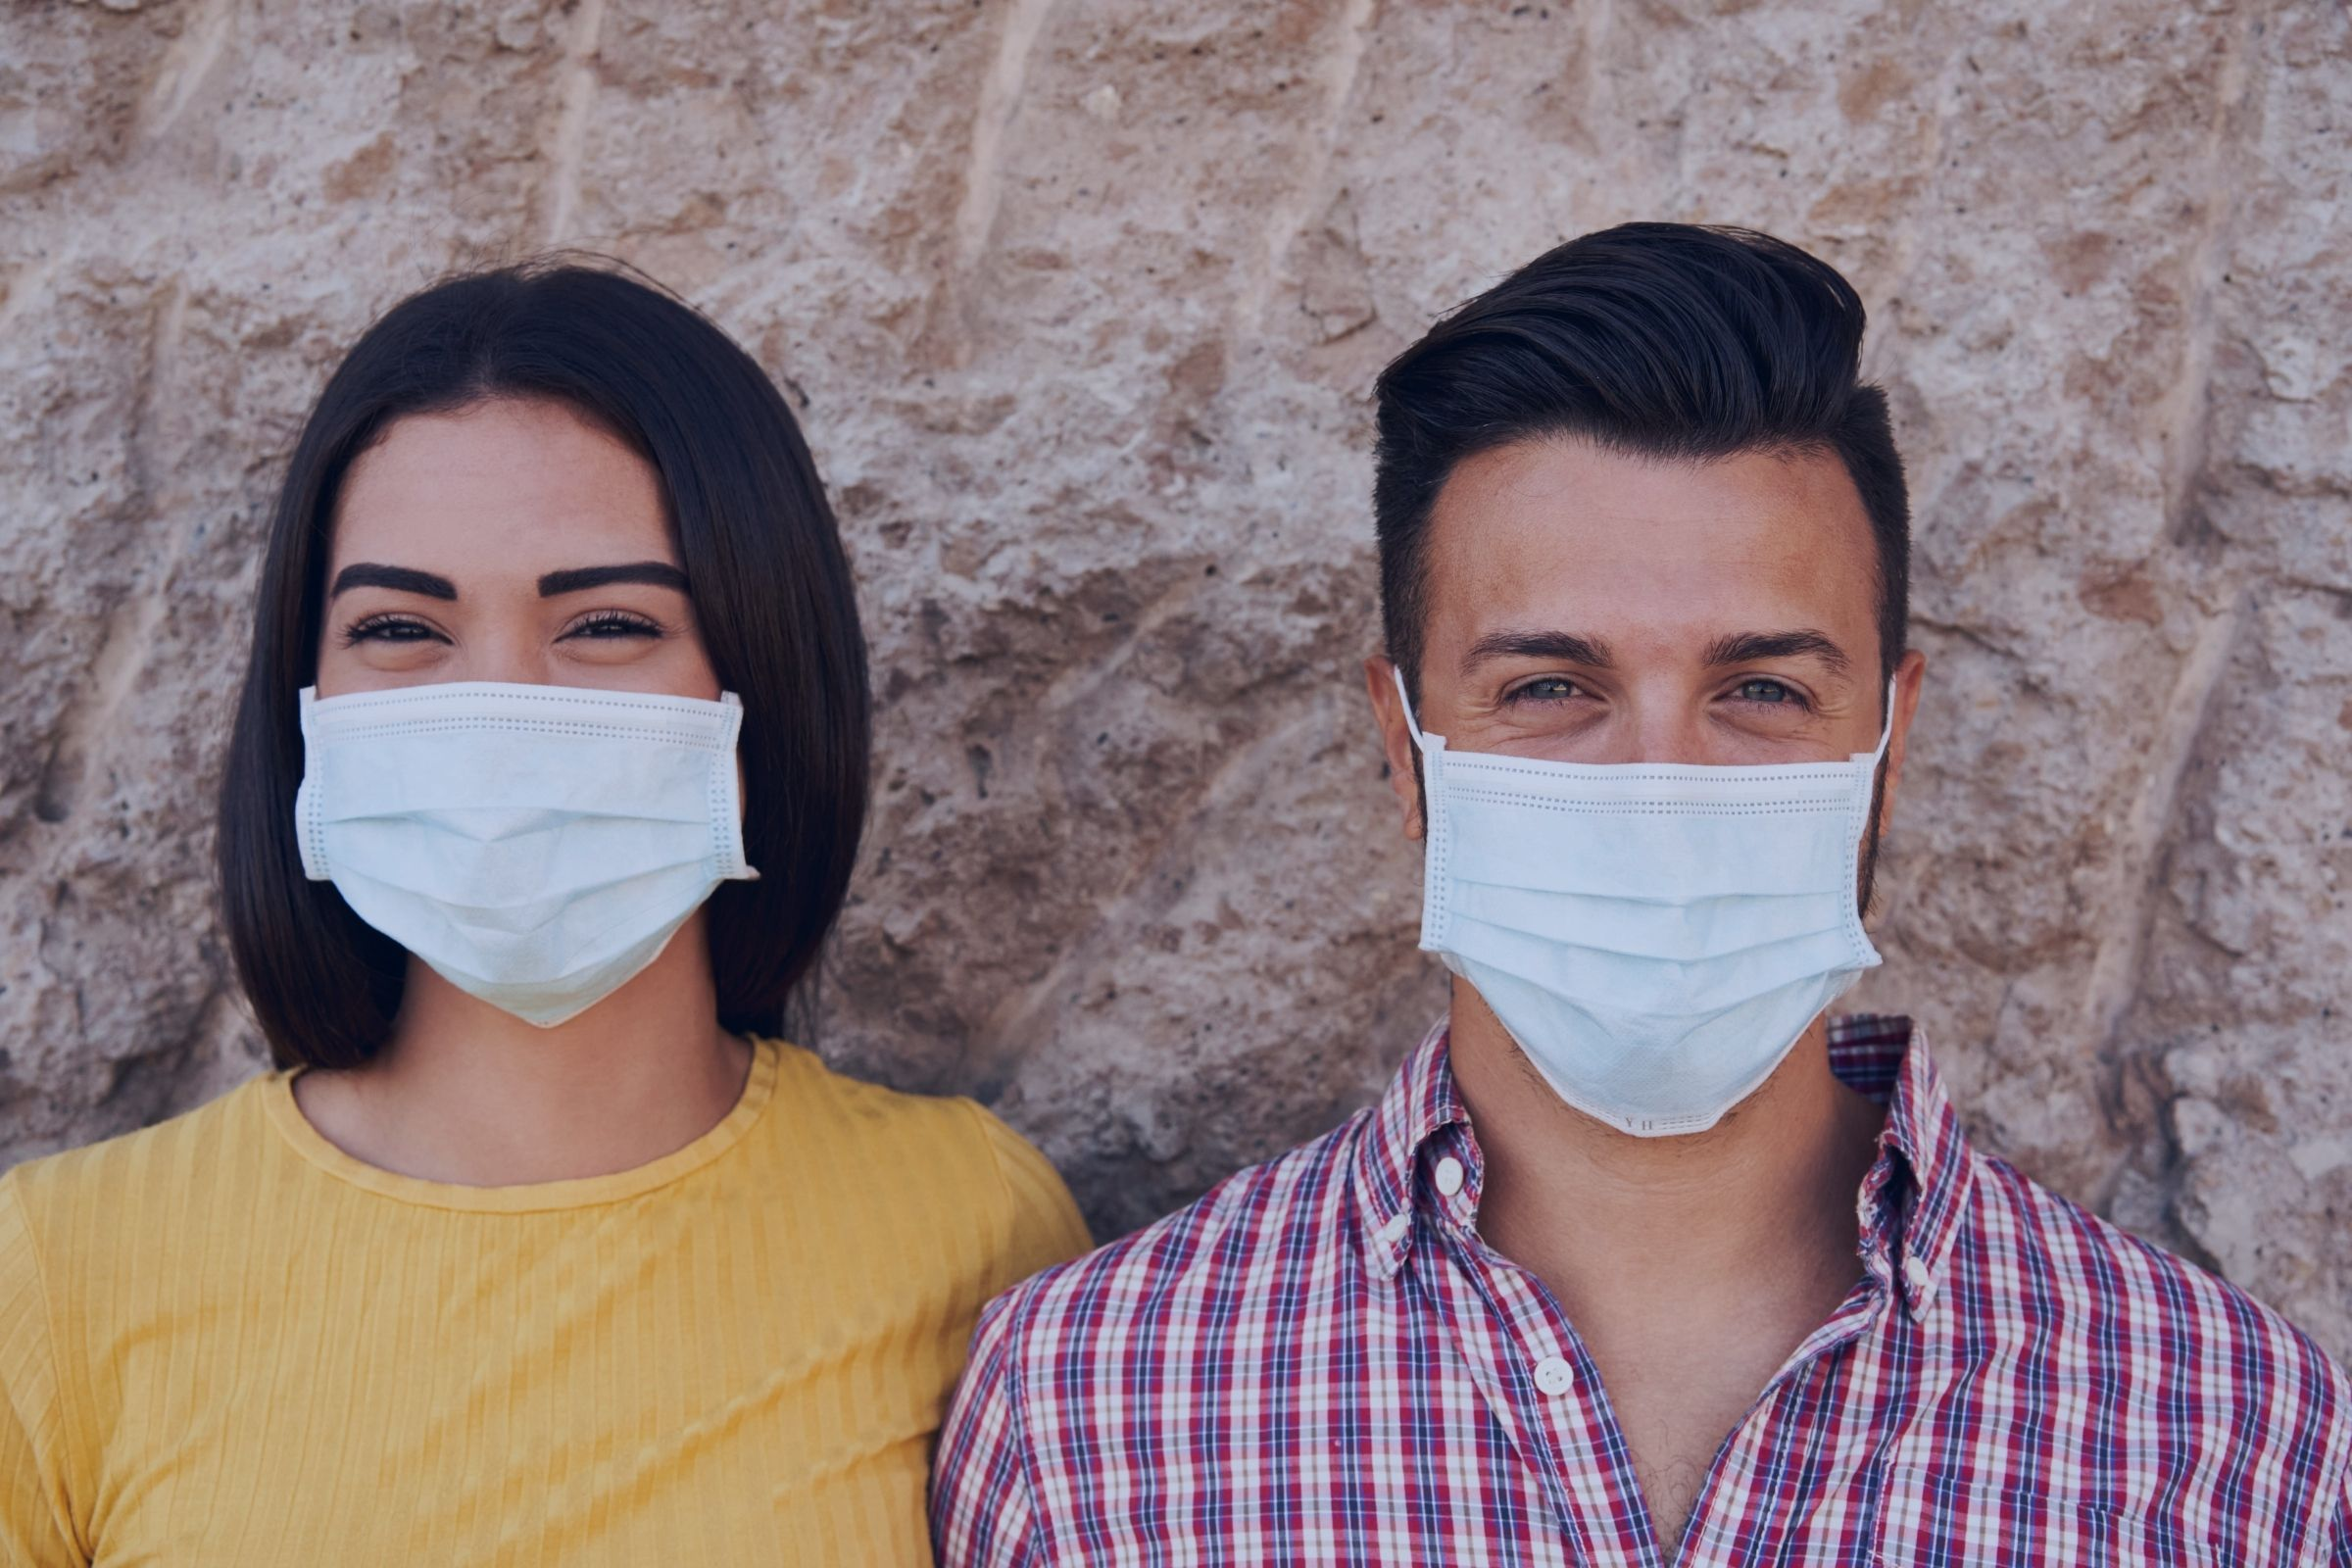 white couple smiling and standing next to each other wearing masks one woman and one man